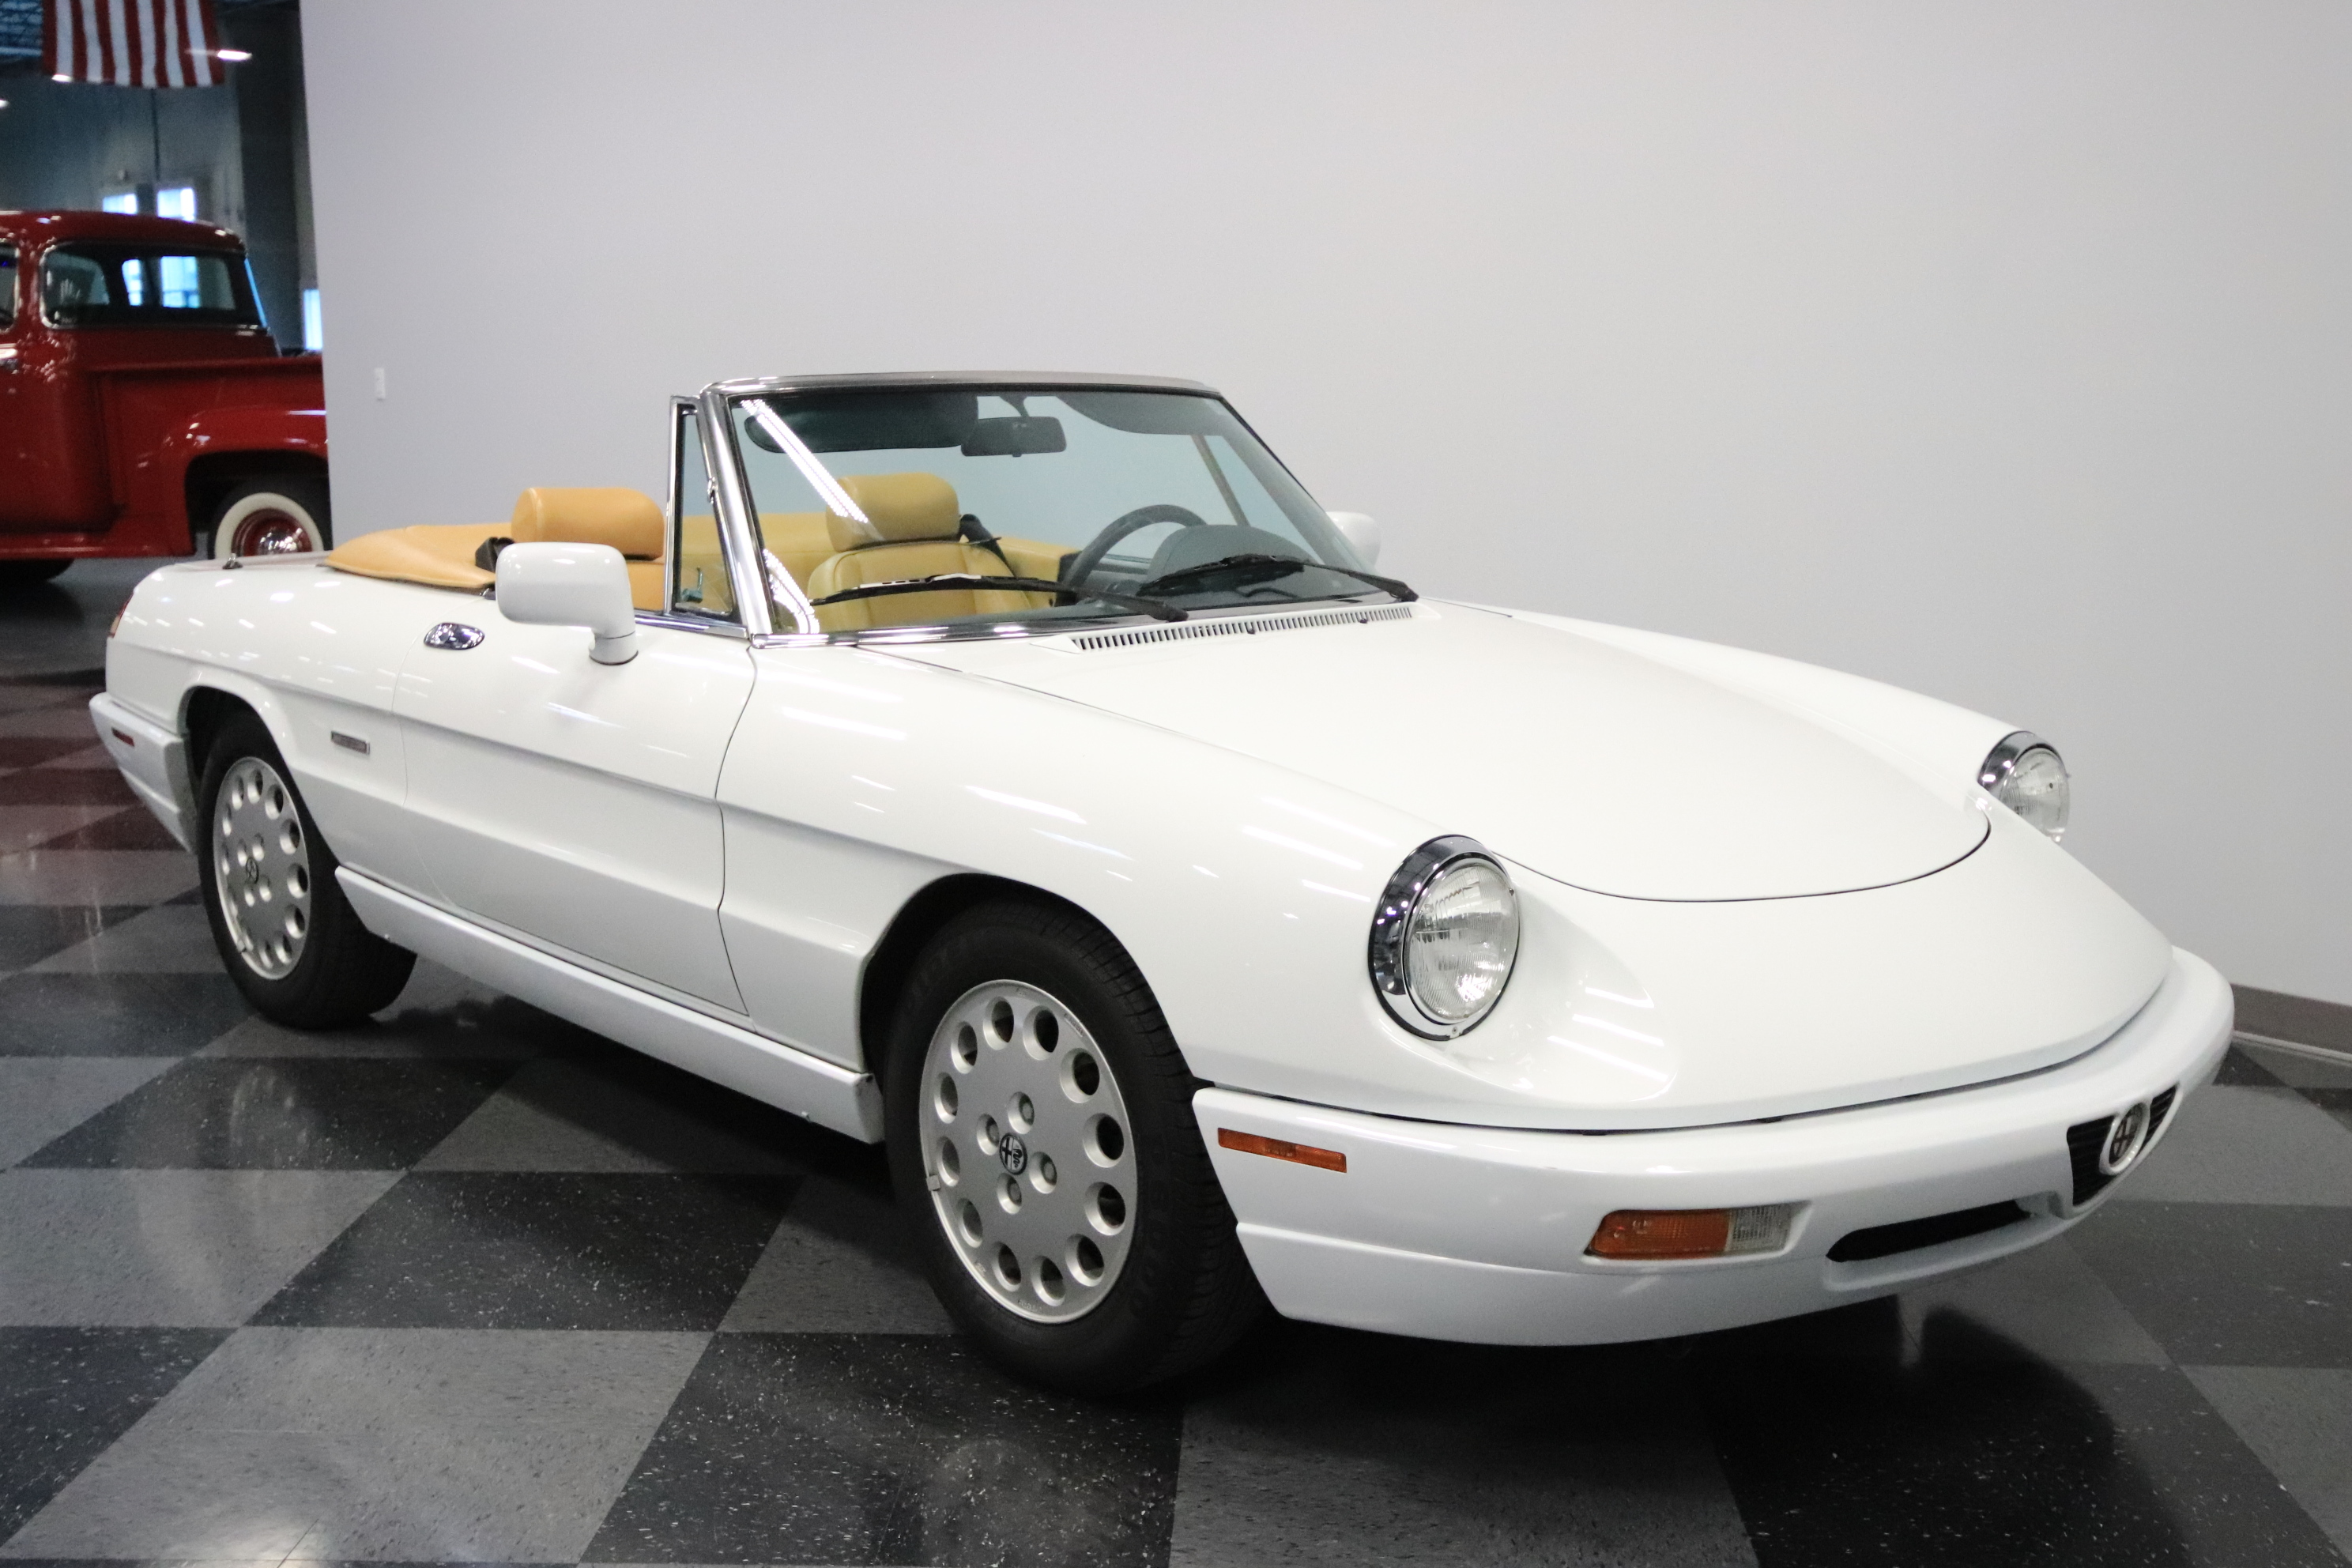 1991 Alfa Romeo Spider Veloce Convertible 2-Door: 2.0L FUEL INJECTED, DISC BRAKS, PS, COLD A/C, CLEAN HISTORY, ONLY 49K ACTUAL KM!